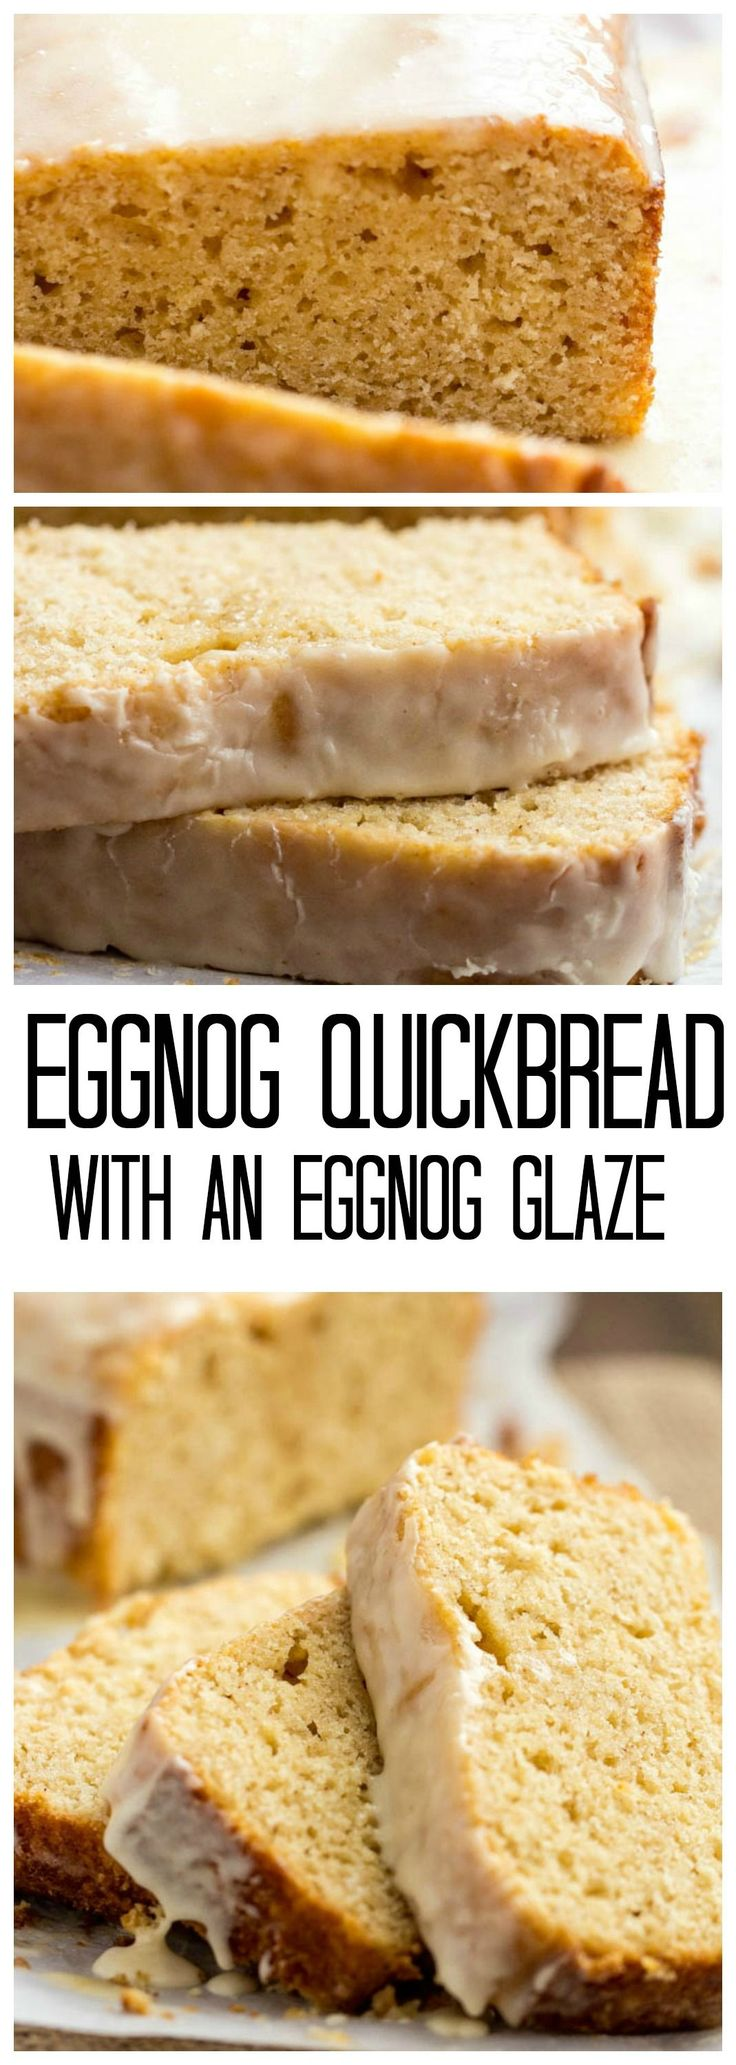 This Eggnog Quickbread is so easy and the most perfectly moist recipe that you will make! The eggnog glaze is perfect on top!